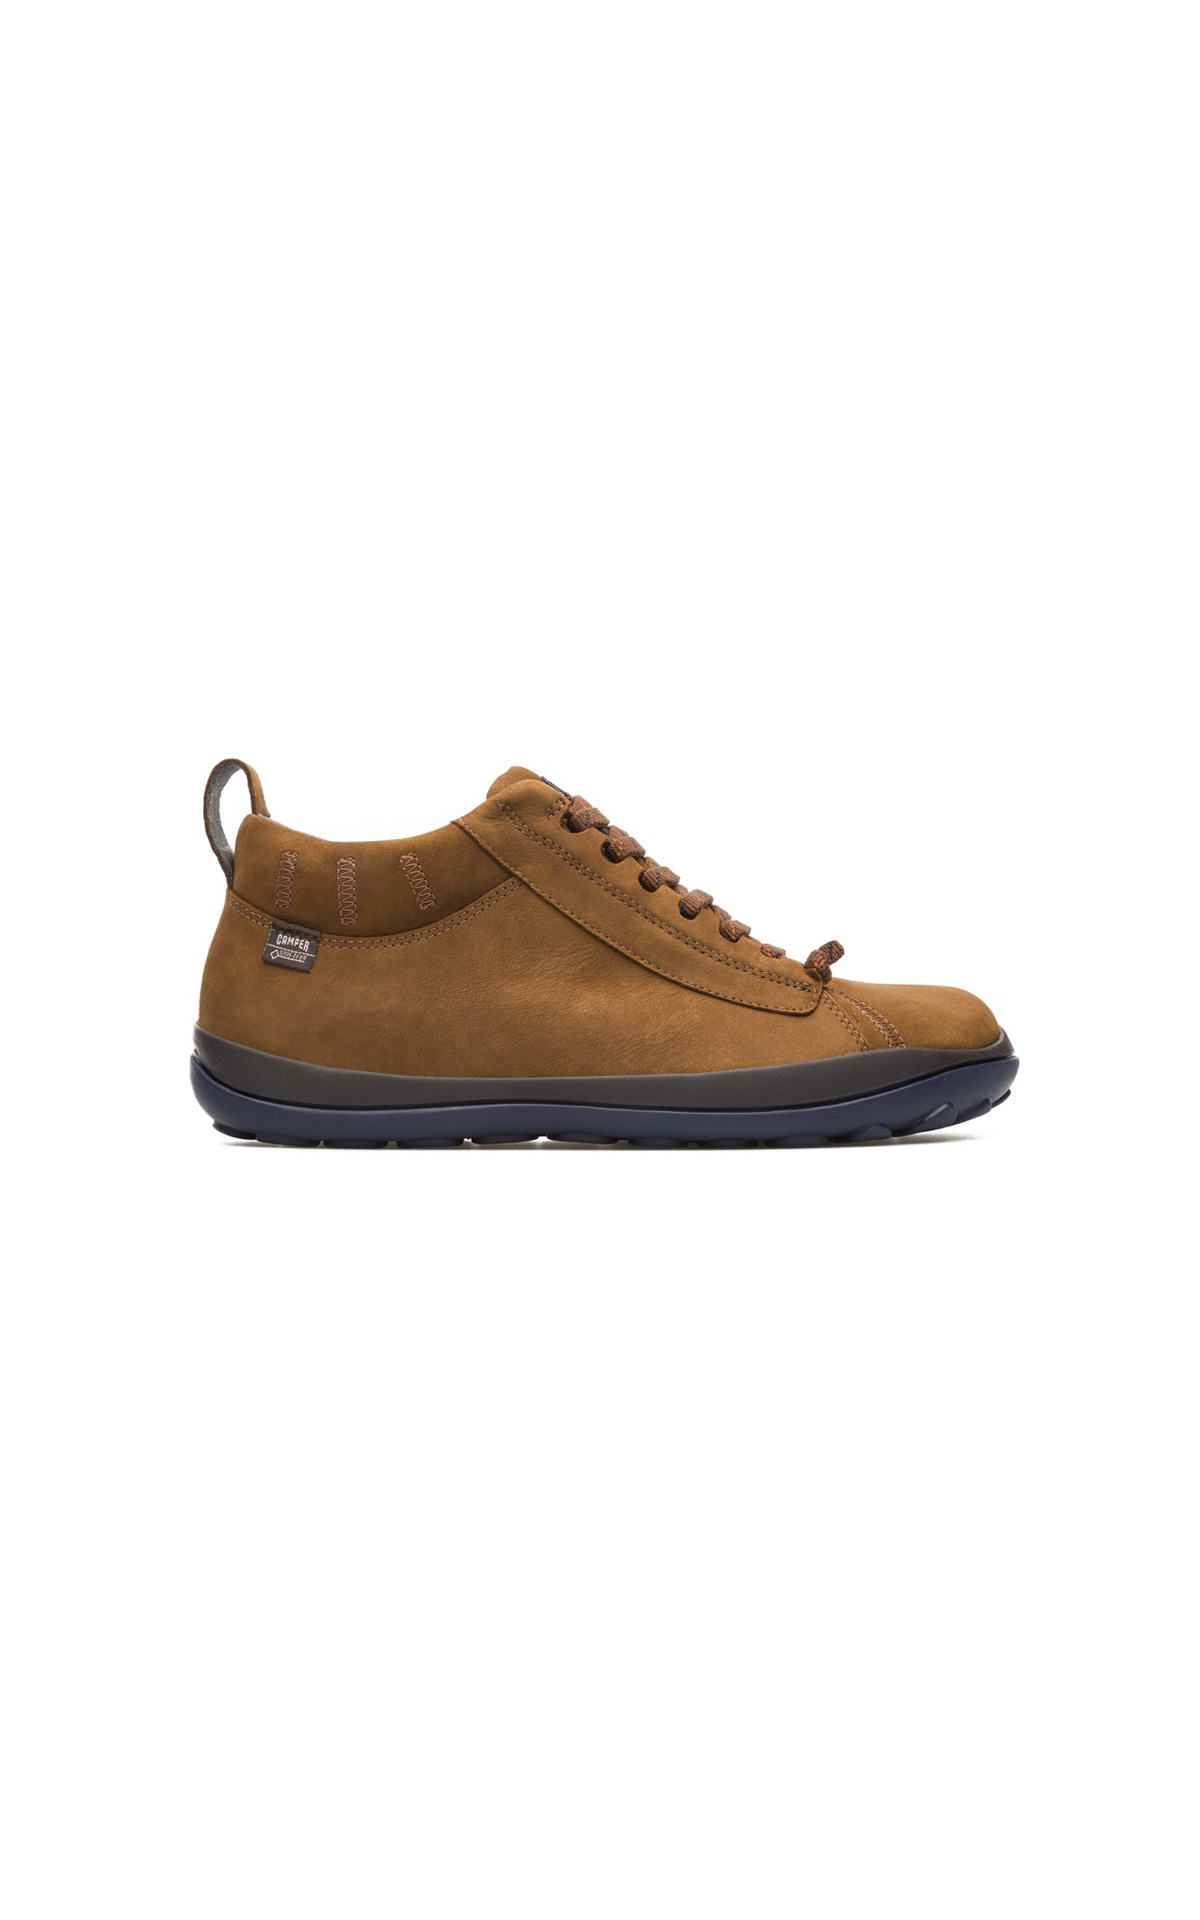 Brown leather sneakers man Camper